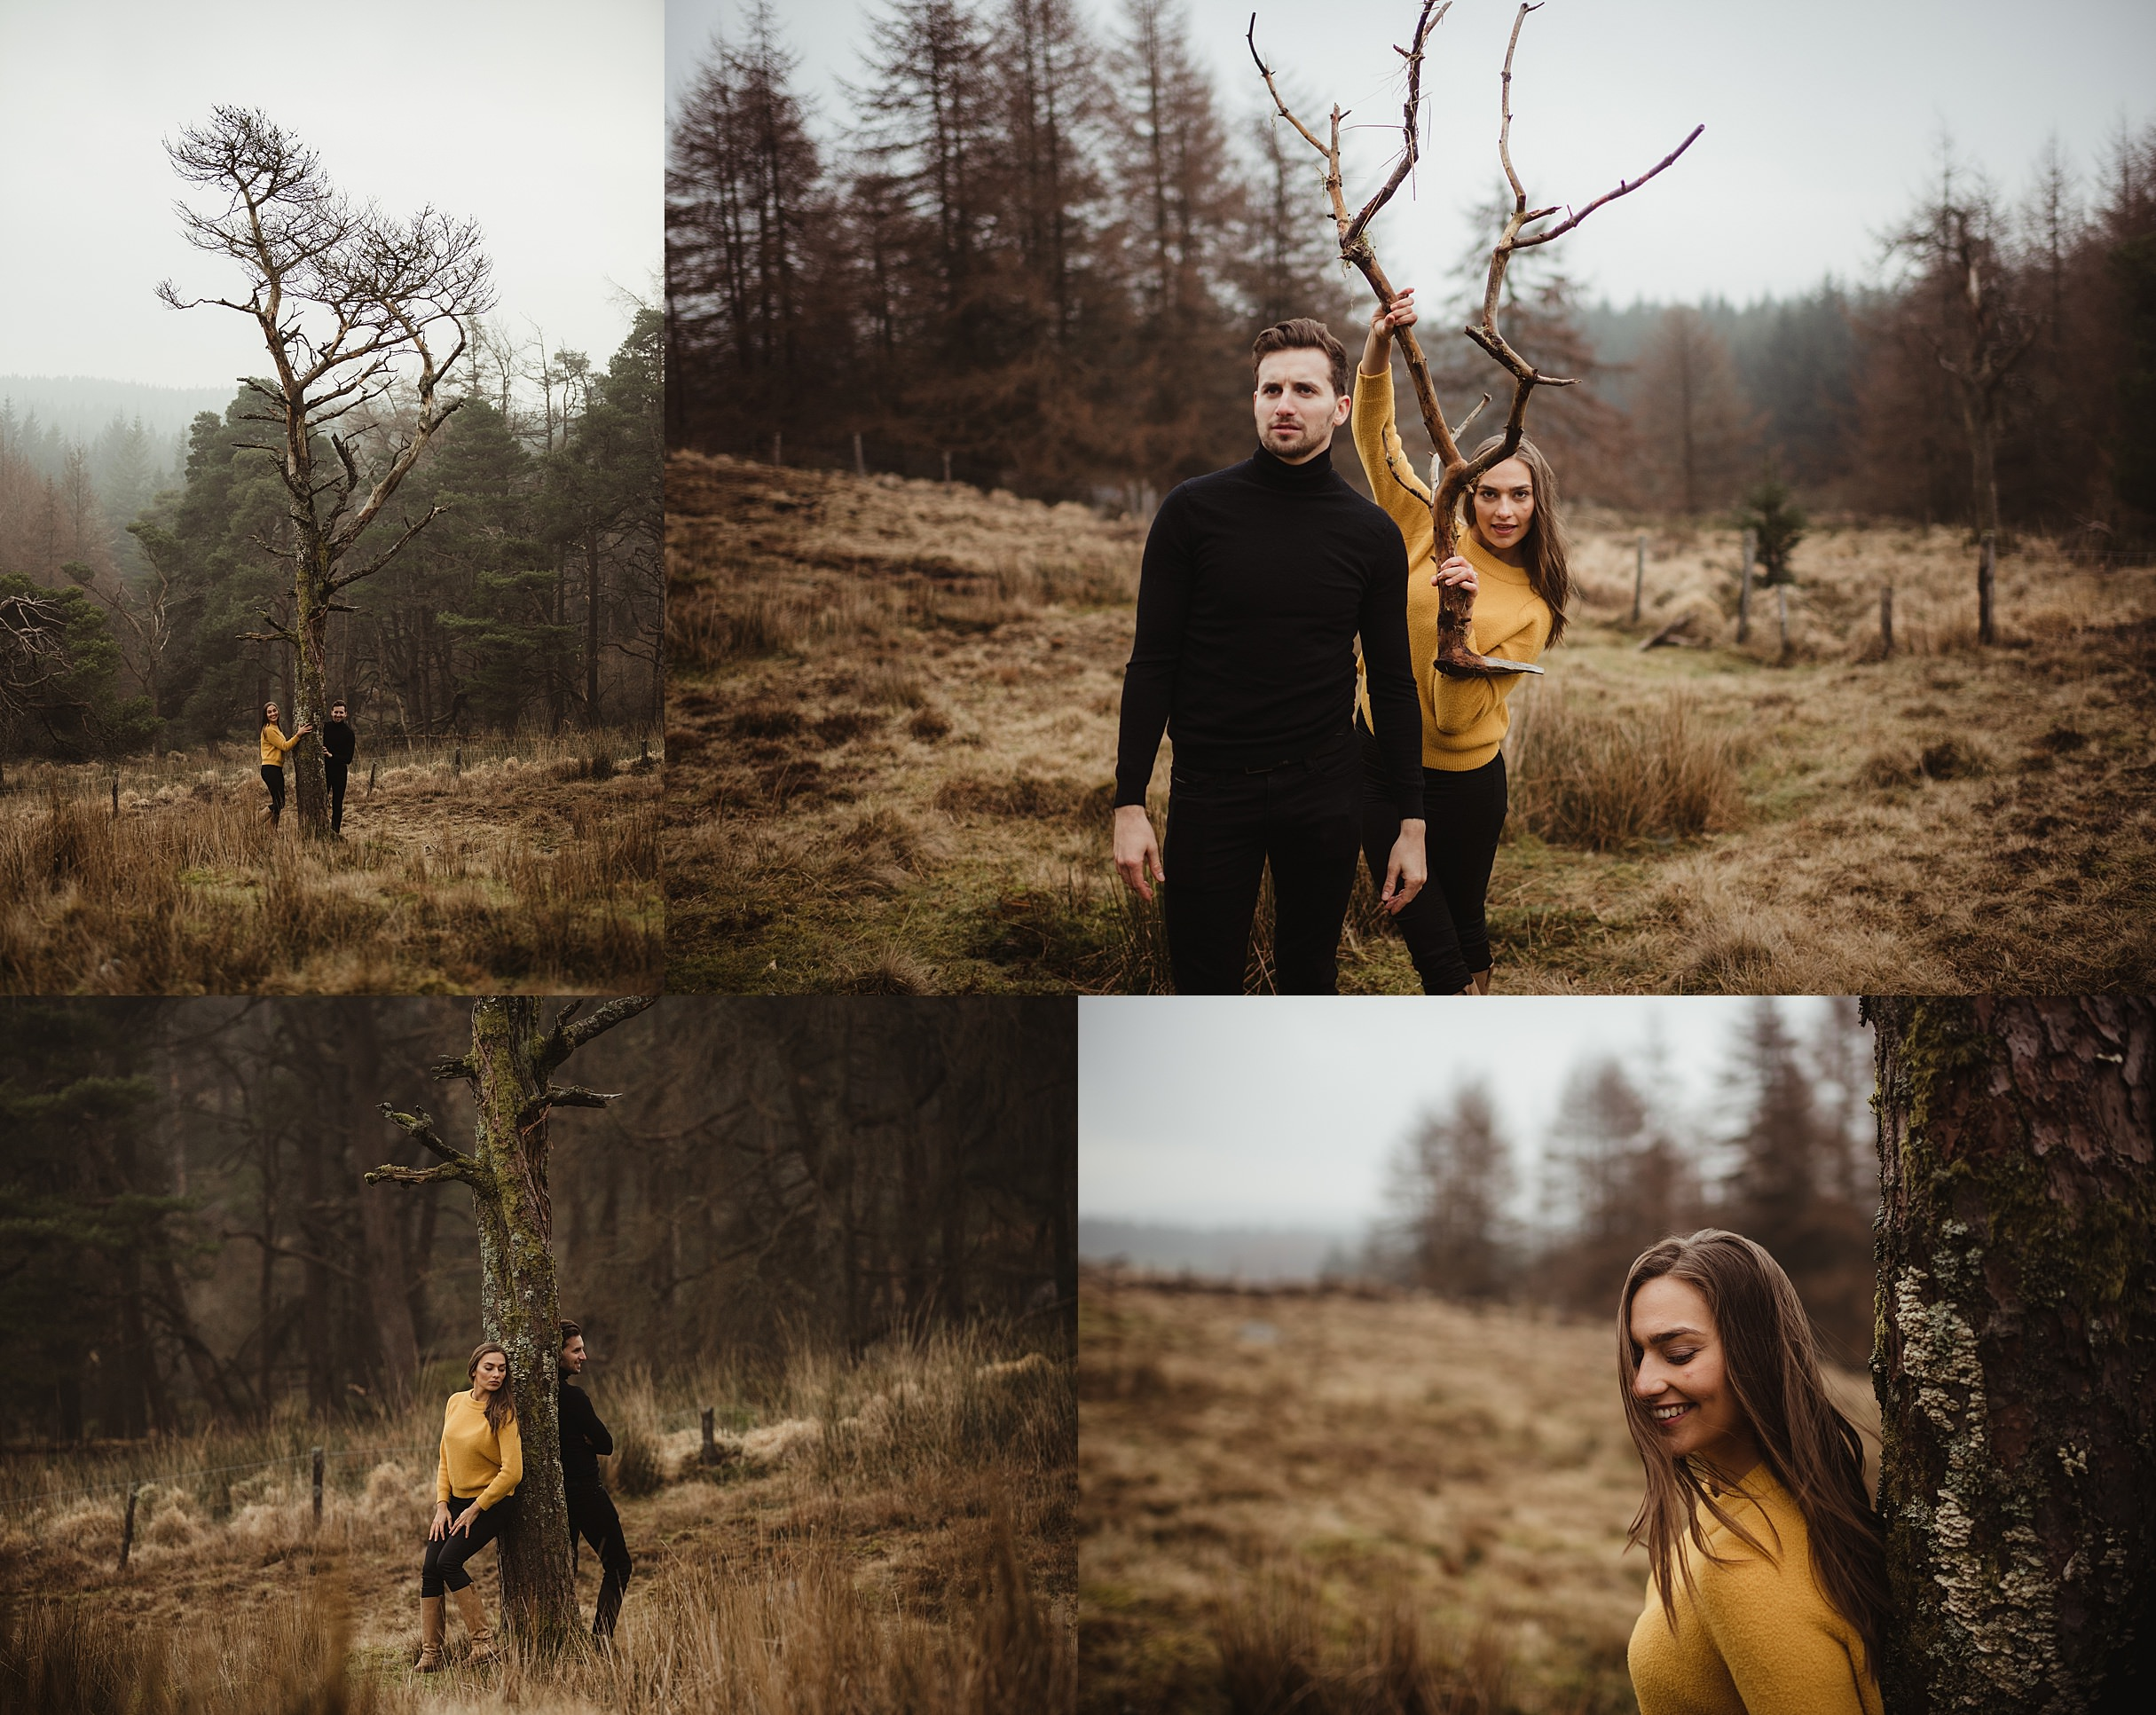 Wicklow-Mountains-Engagement-Dublin-Photographer-Session-76.jpg